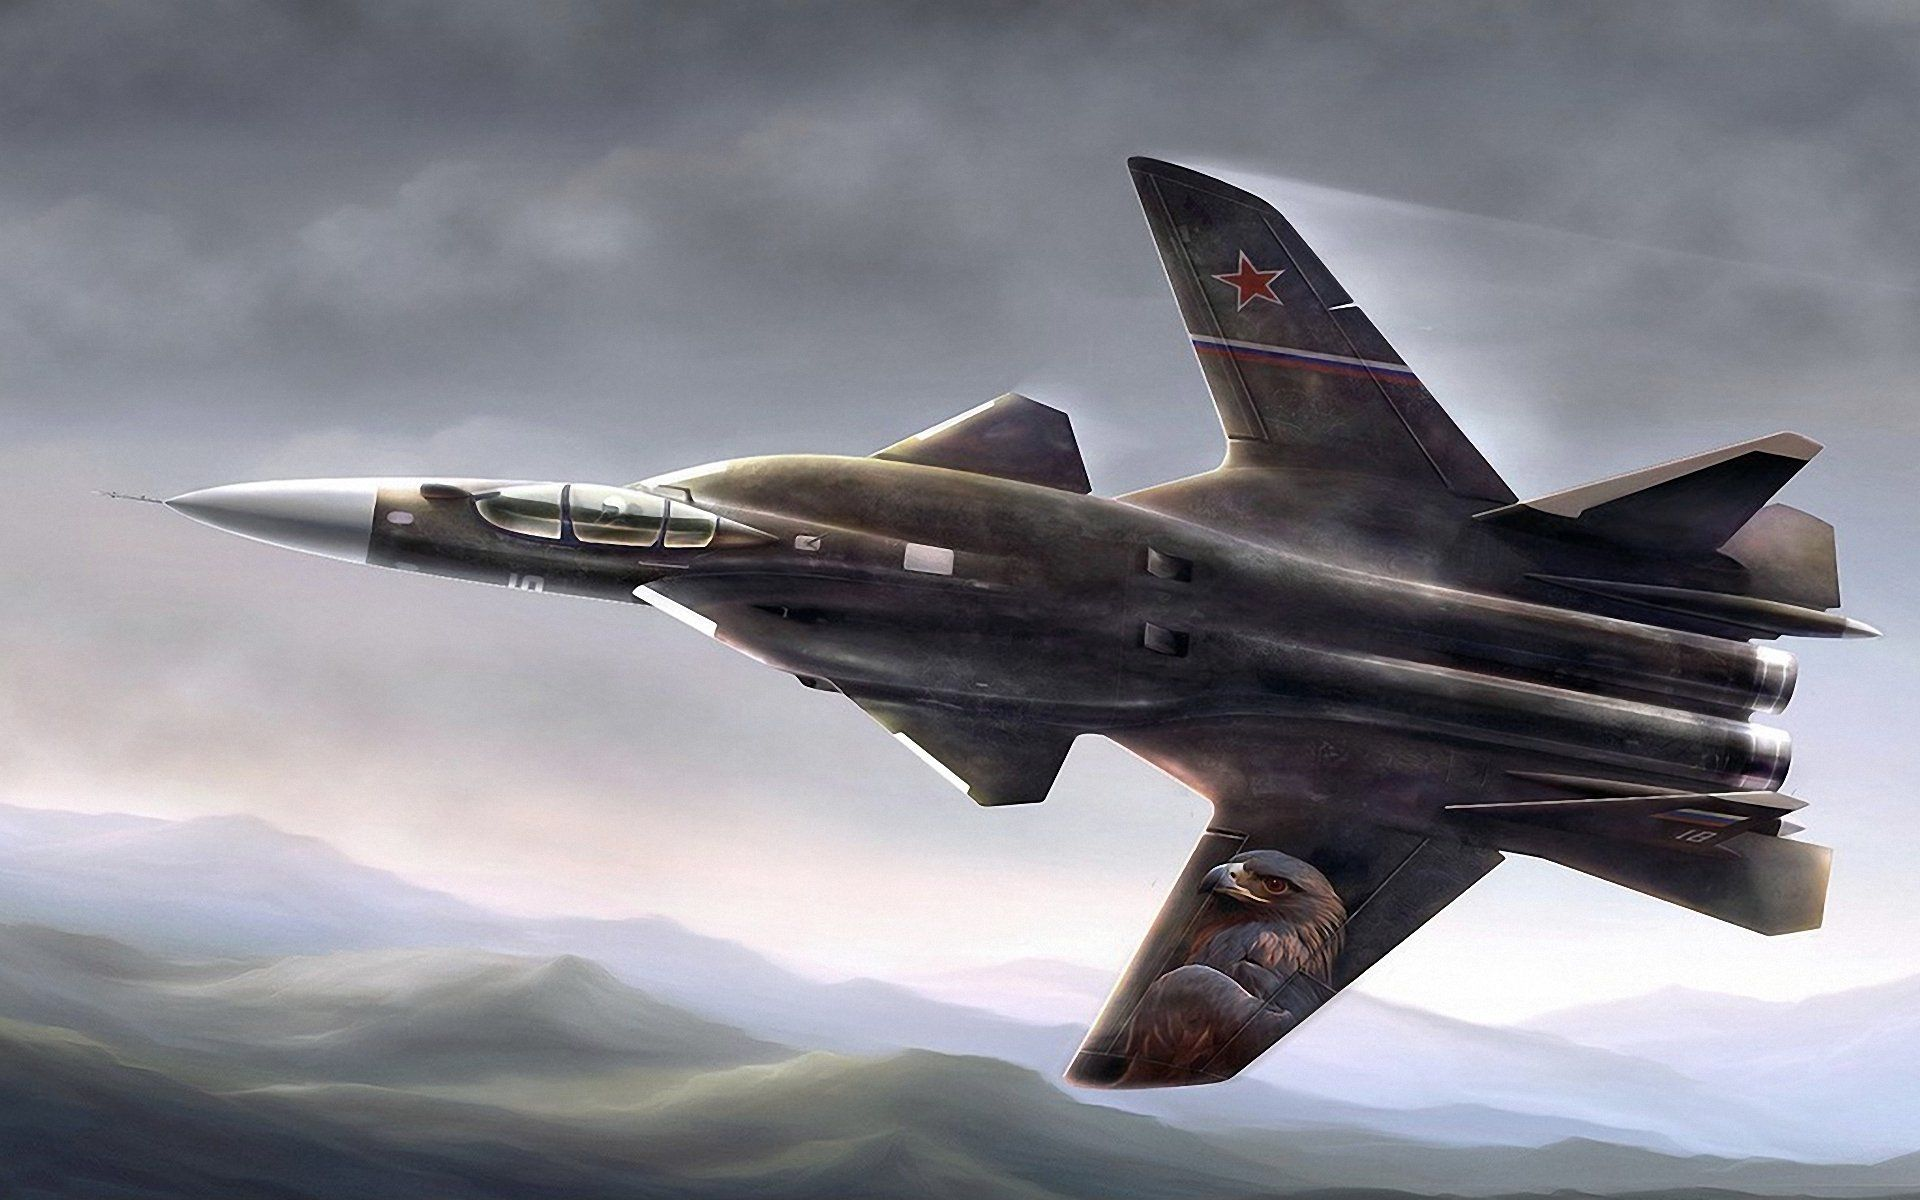 Sukhoi Wallpapers Top Free Sukhoi Backgrounds Wallpaperaccess Images, Photos, Reviews